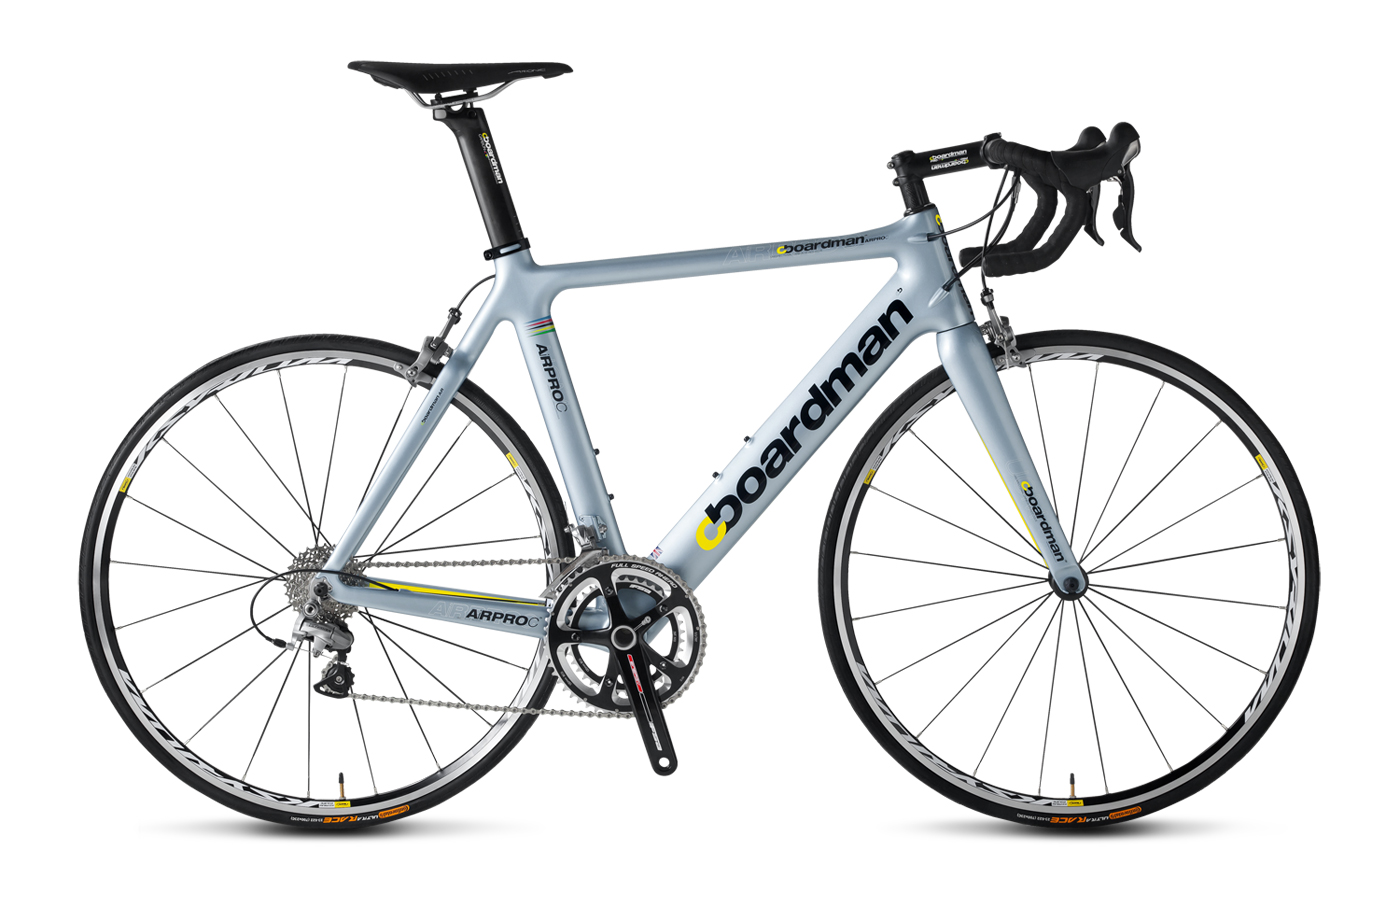 Bianchi Infinito CV Road Bike Utregra White/black (2014) Around Cairo